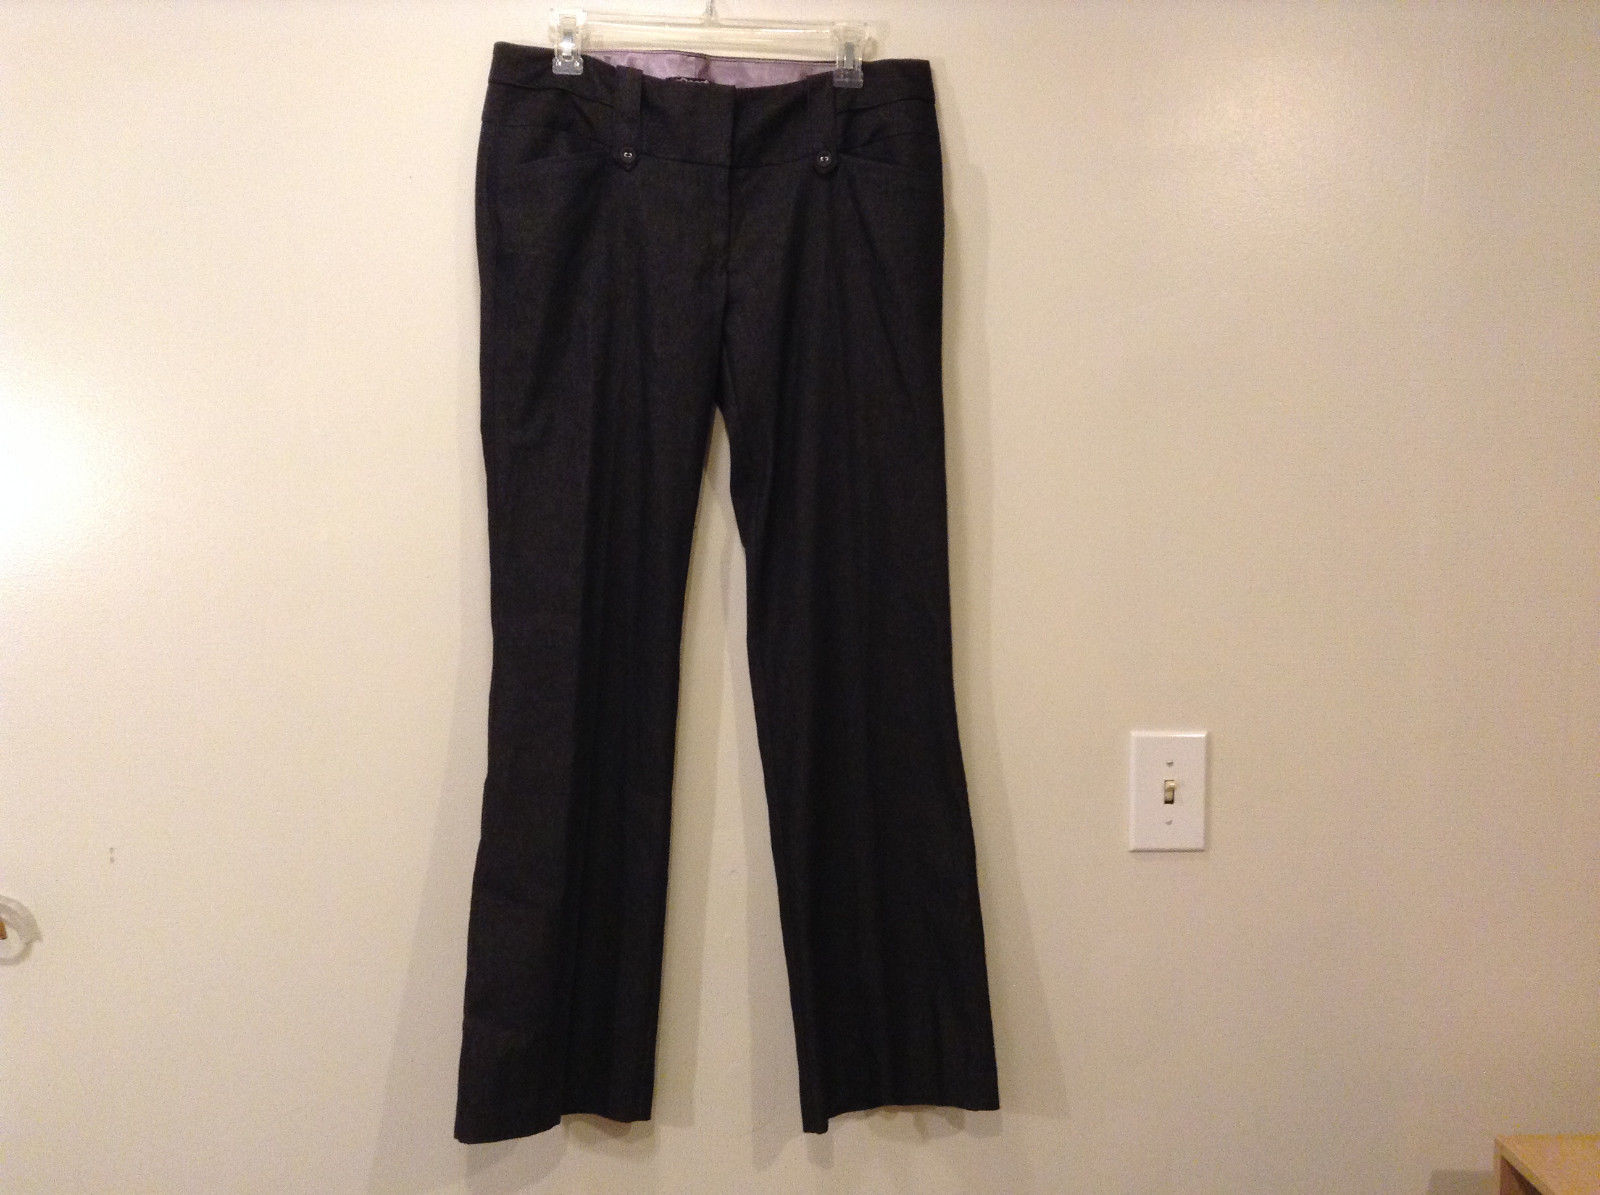 Juniors Girls Stooshy Dark Gray Dress Pants Size 9 Cotton Polyester Spandex